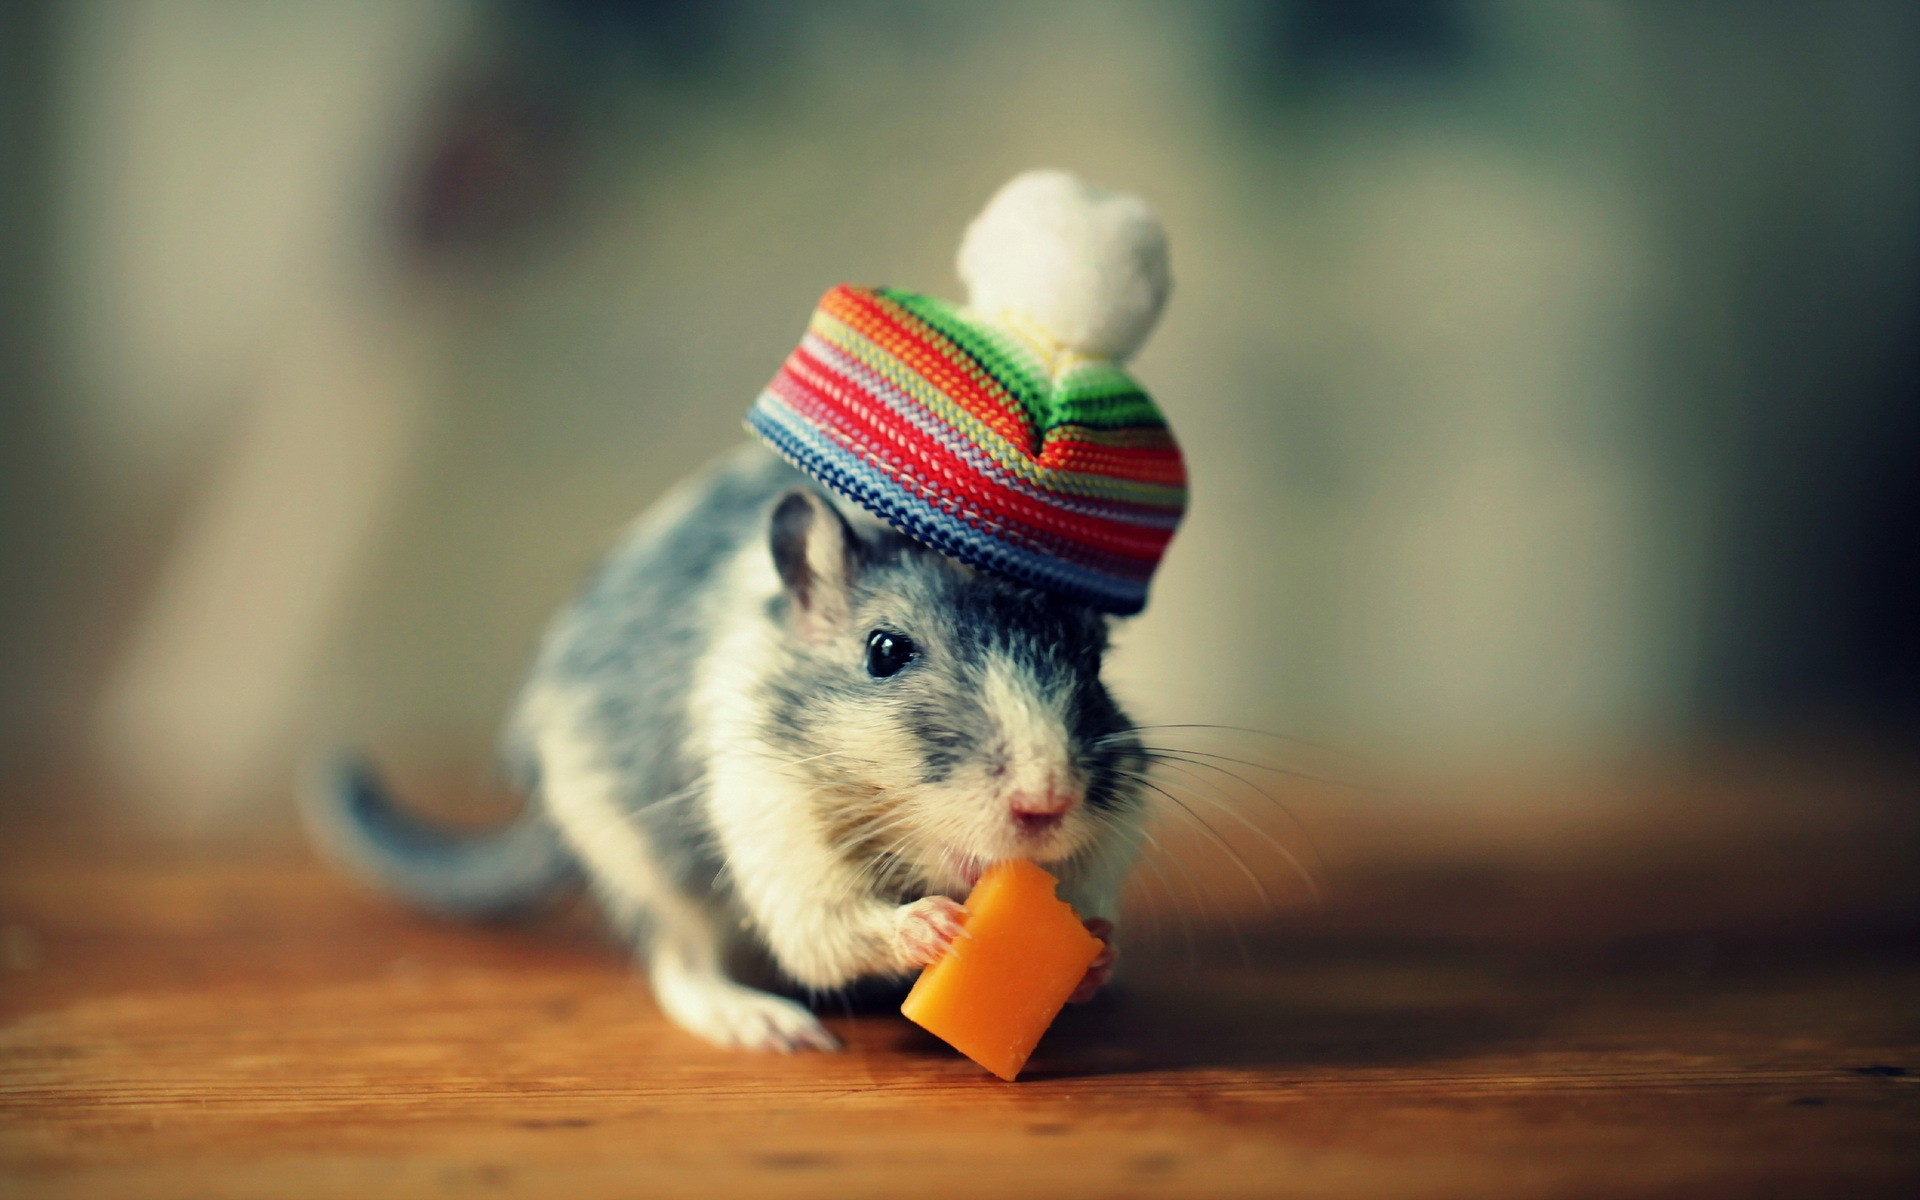 Eating-mouse-with-hat